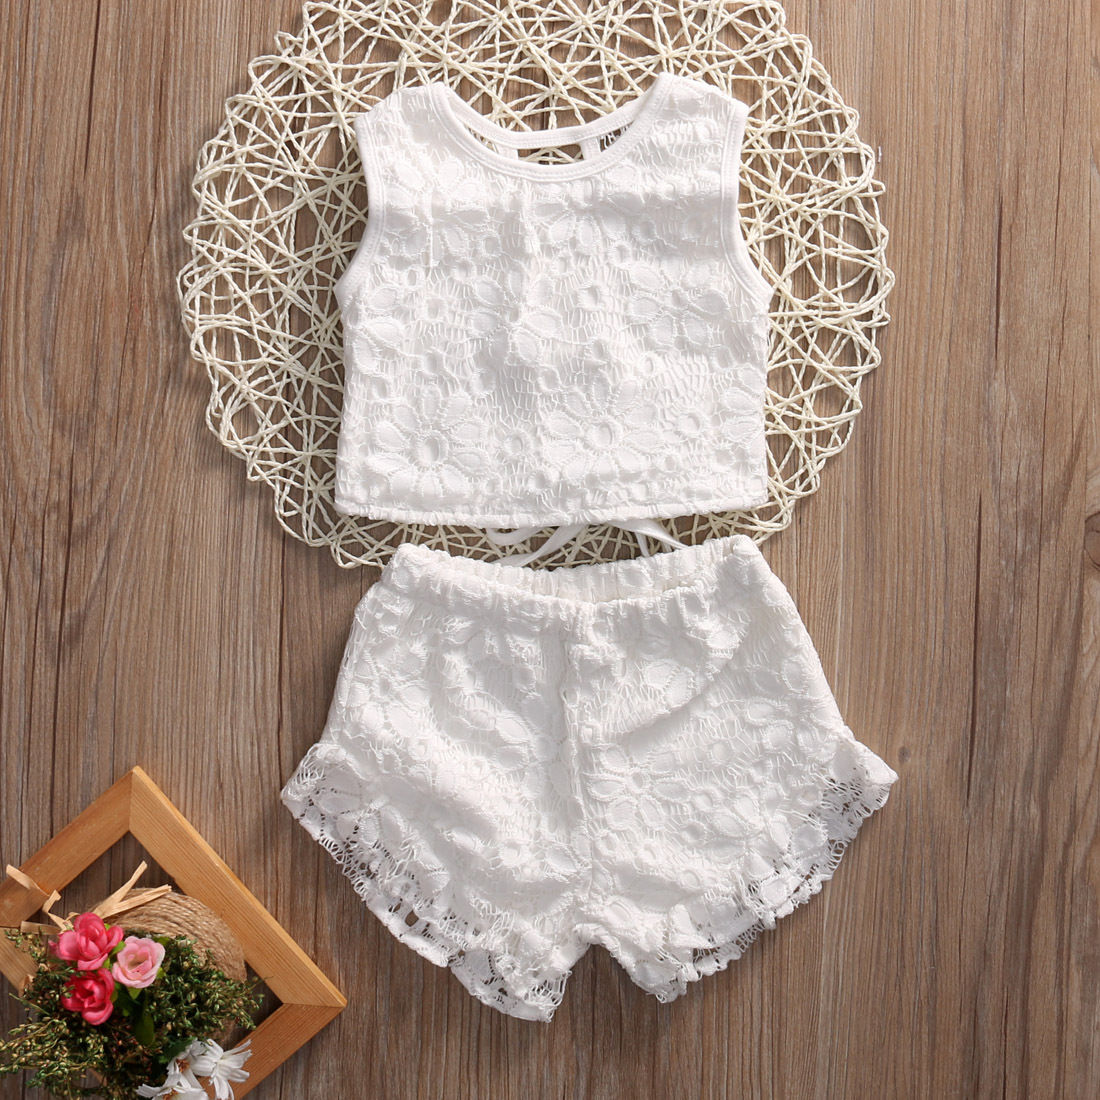 2PCS Kids Baby Girl Summer Clothes Set Toddler Girls White Lace Floral Crochet Tops Shorts Outfits Set Clothings